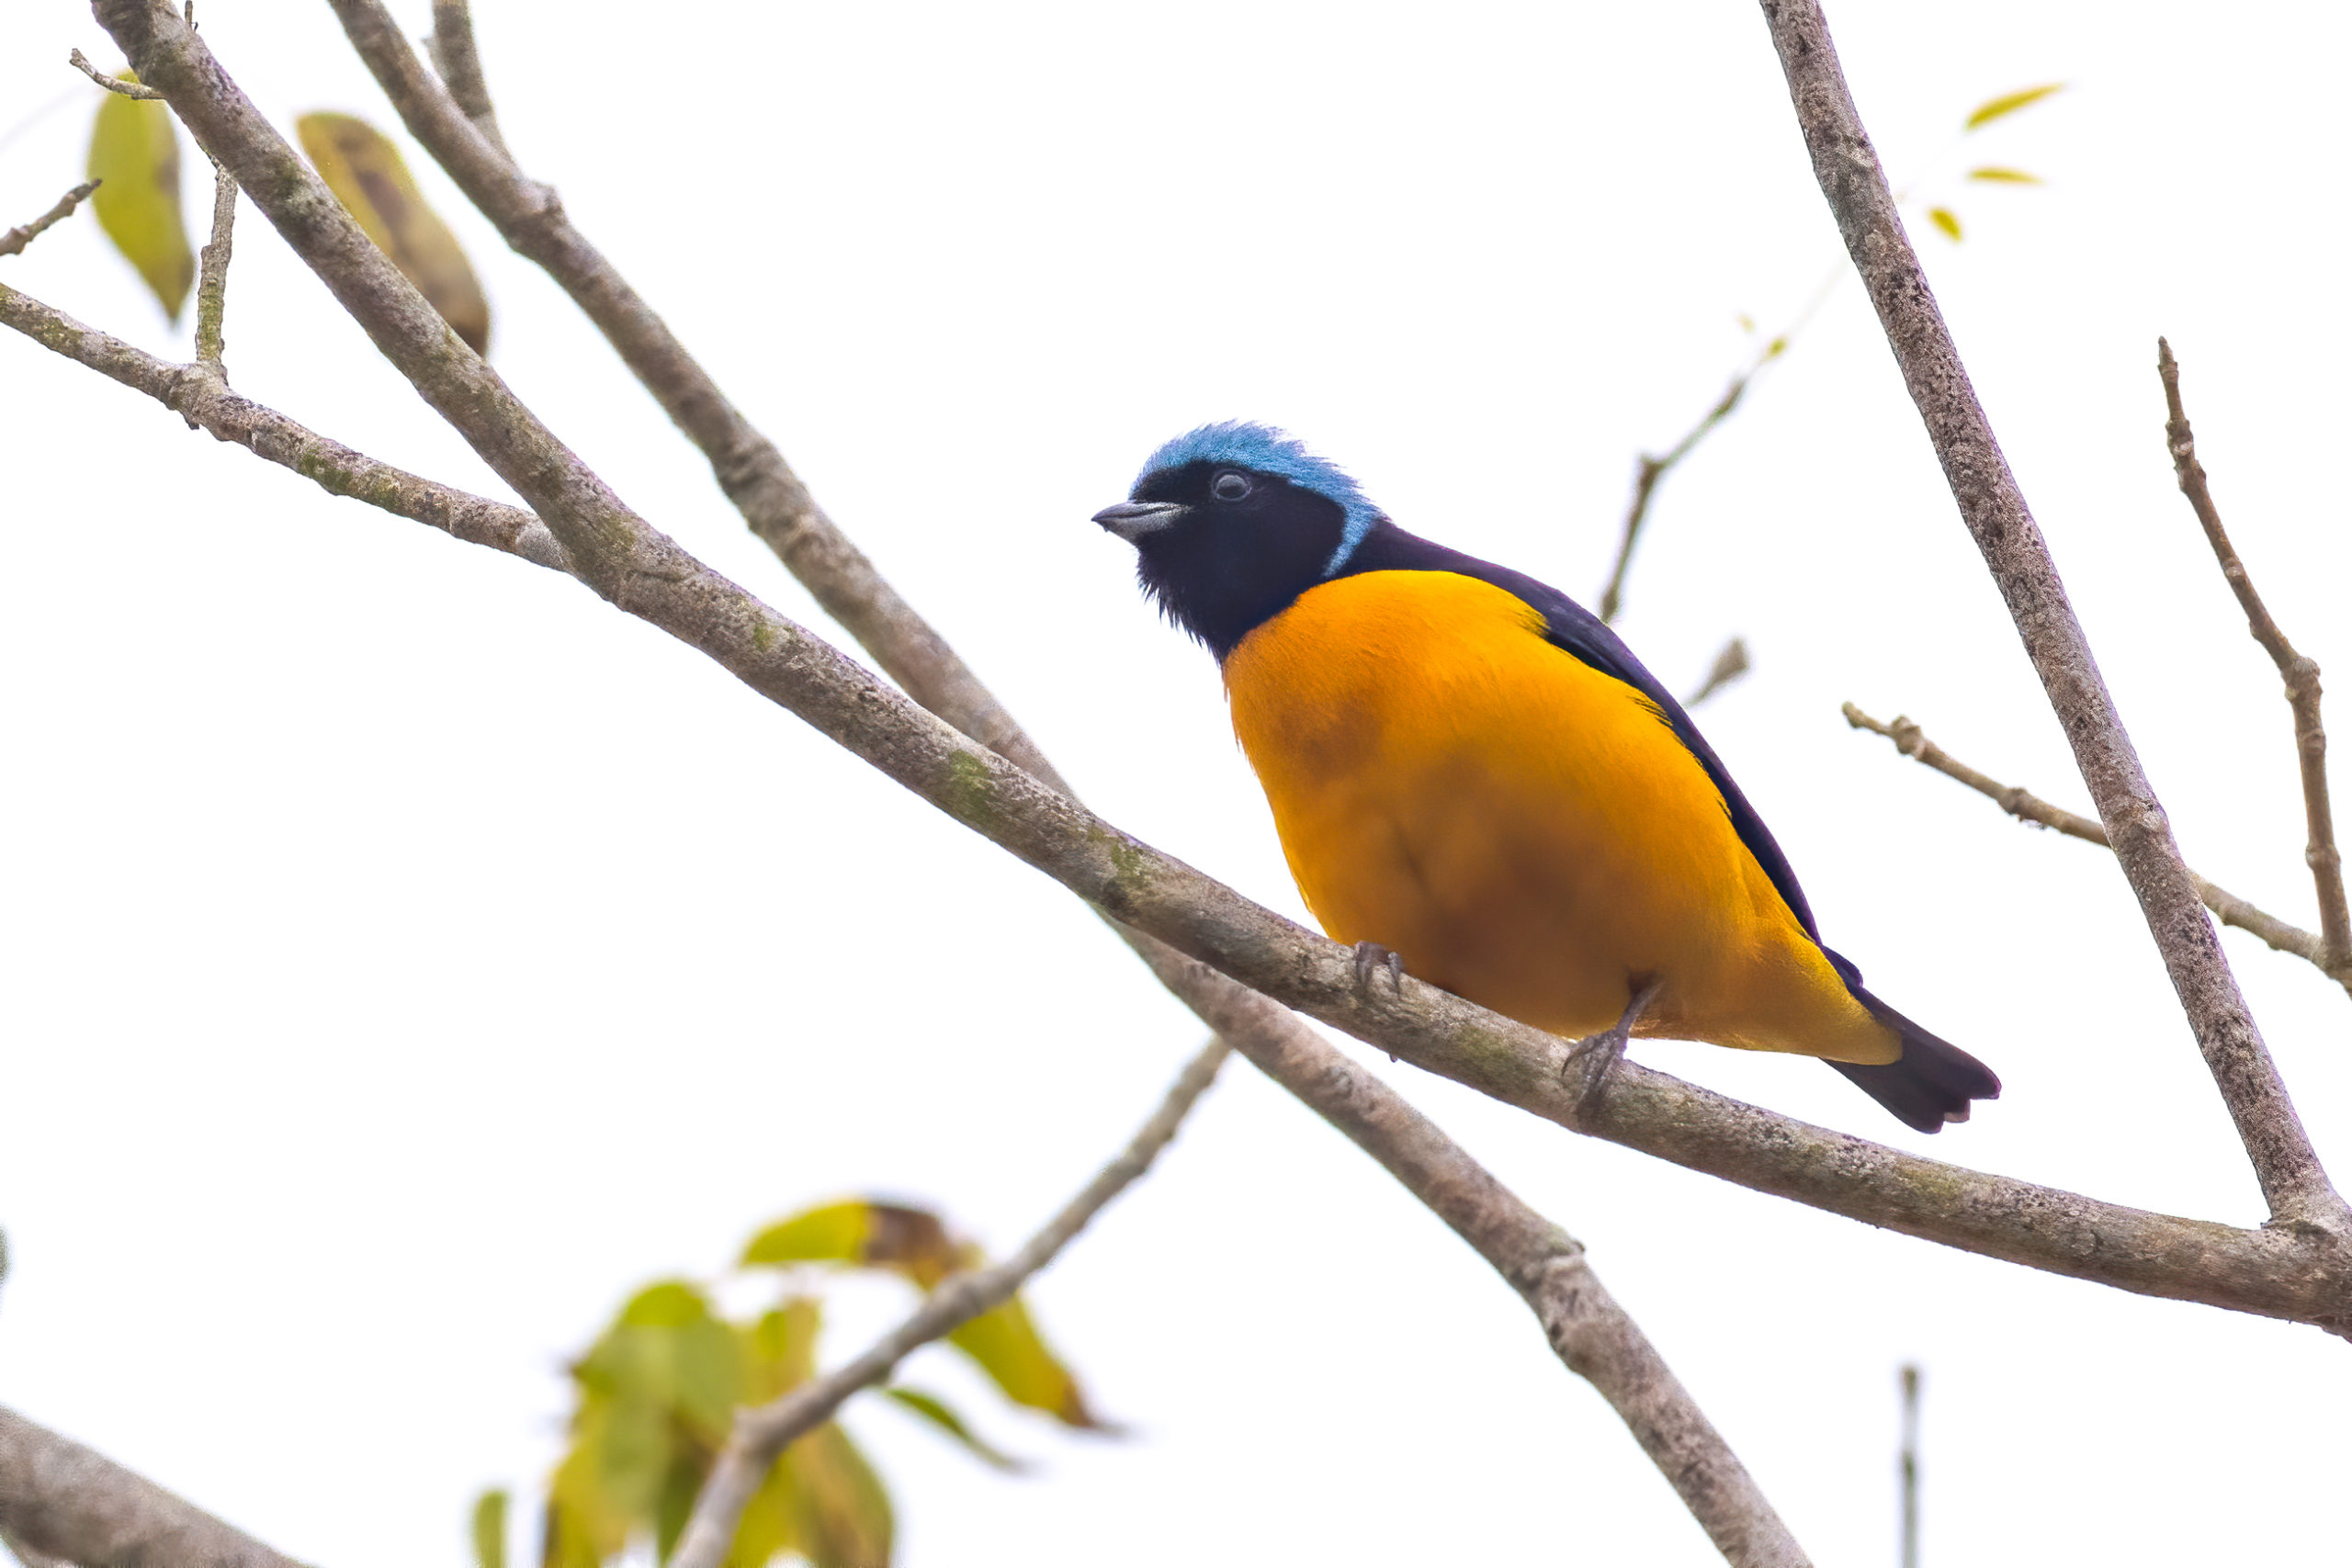 photo of an orange, black, and blue bird in a tree